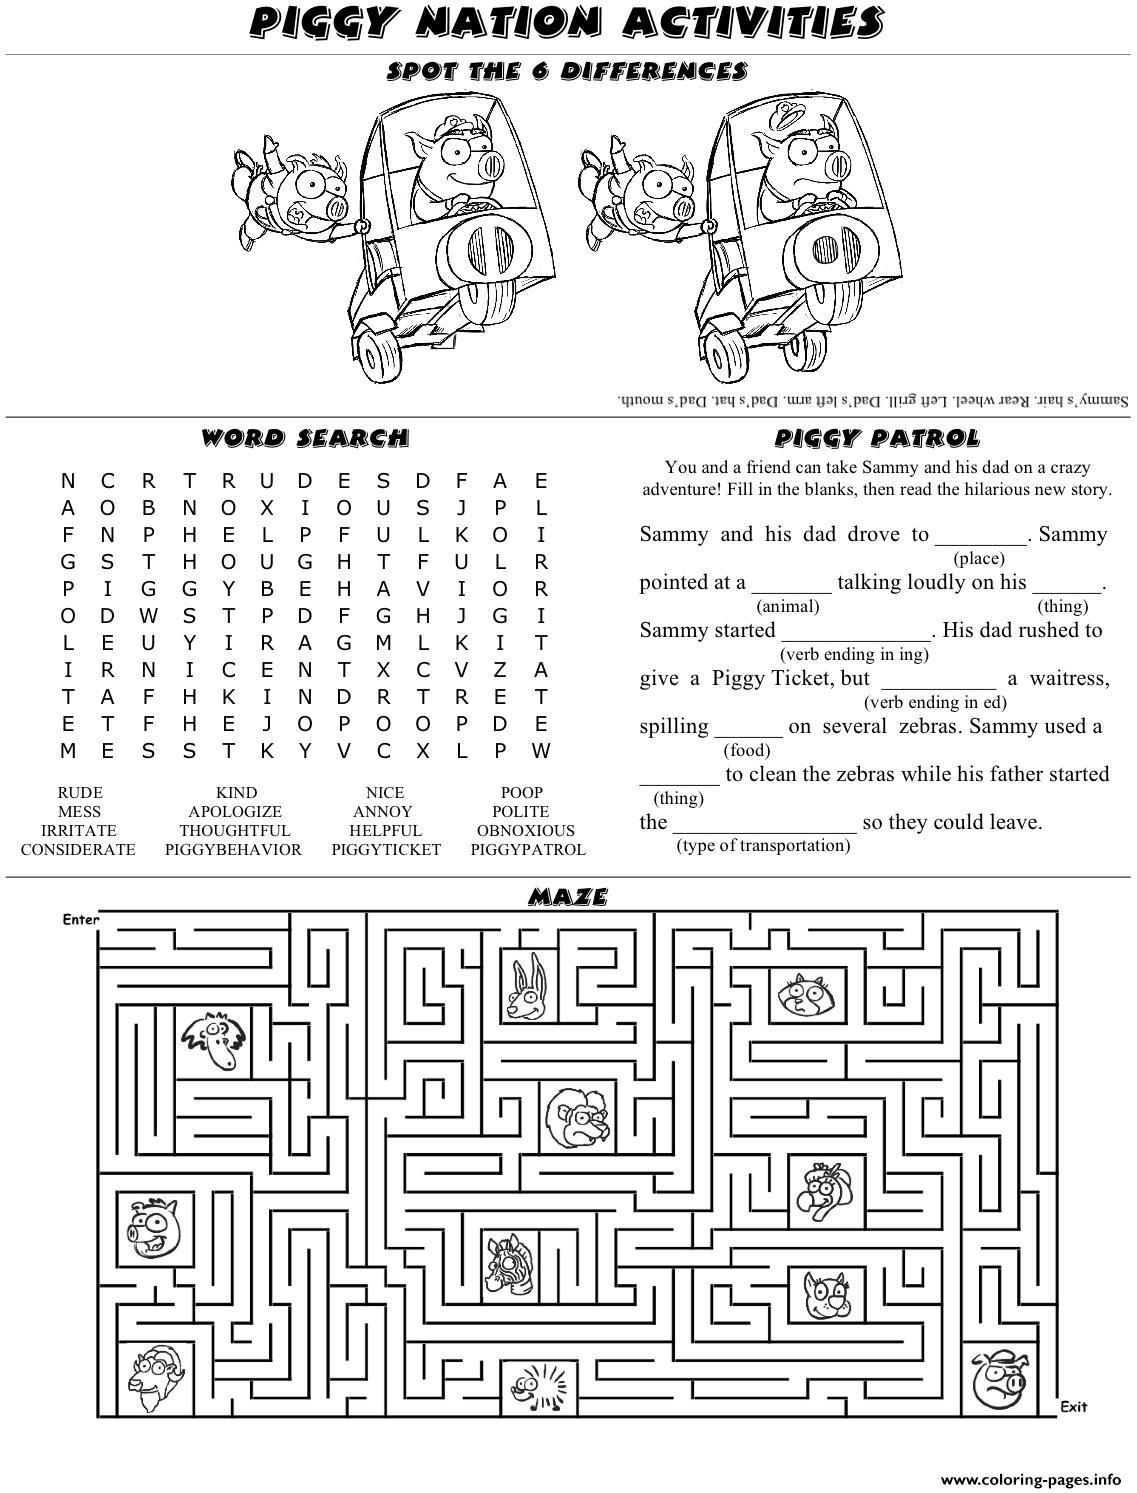 Piggy Nation Activity Sheet Front Coloring Pages Printable